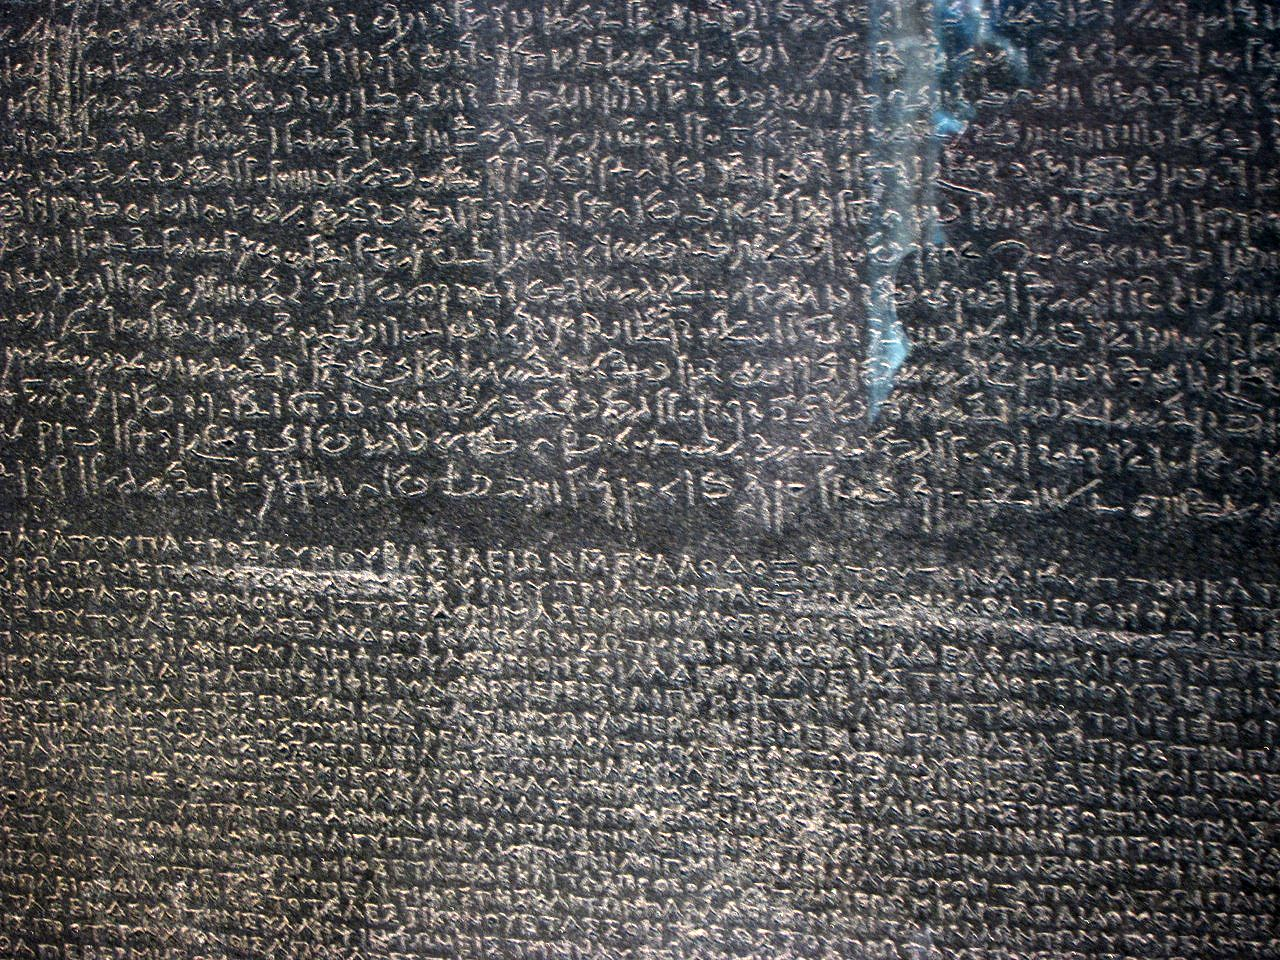 rosetta stone egyptian writing and meaning